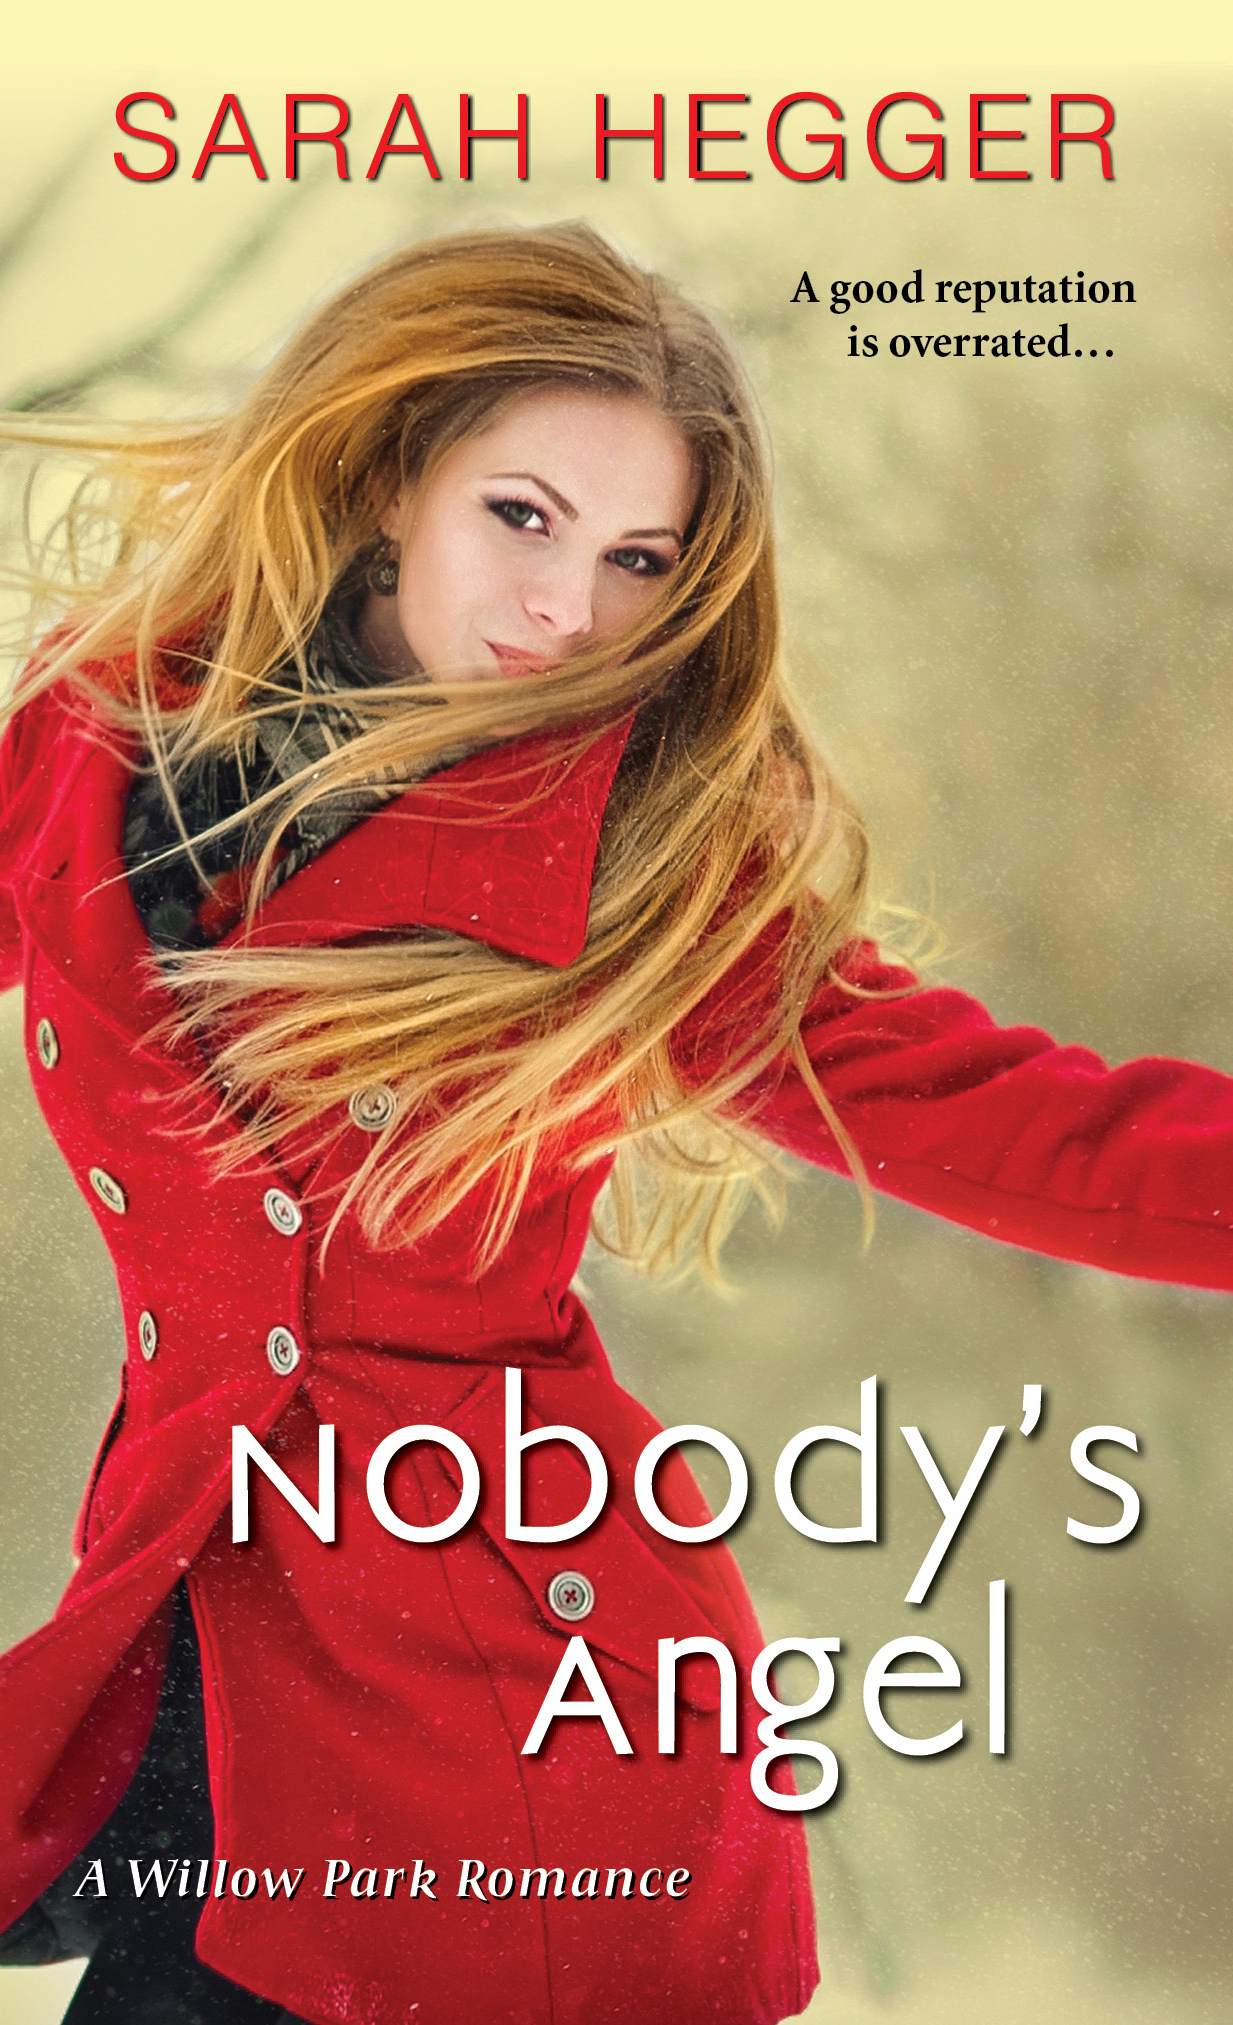 Nobody's Angel by Sarah Hegger